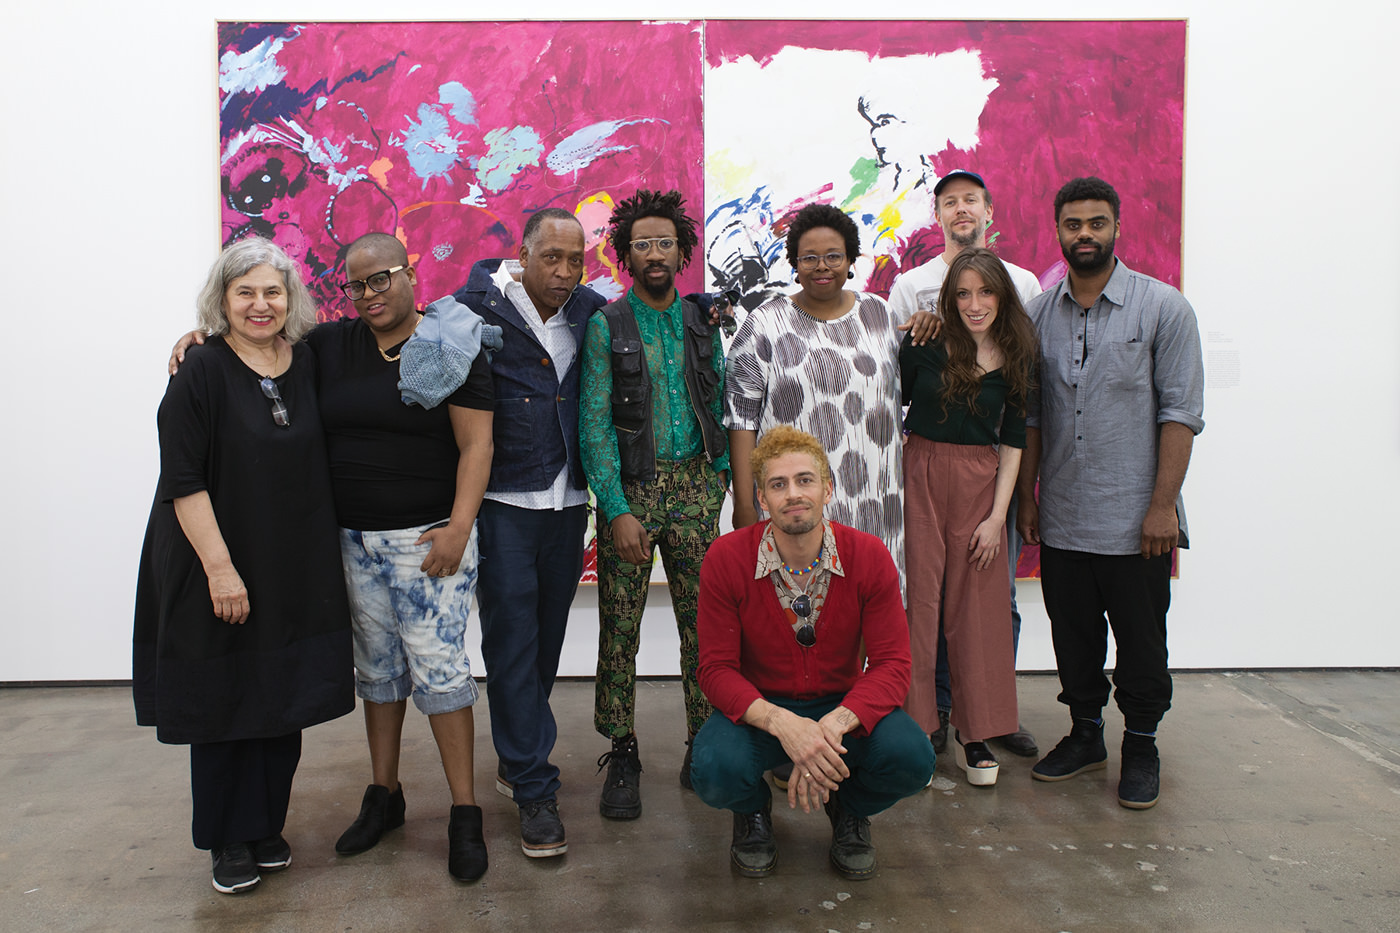 (L-R) Amy Sillman, Brenna Youngblood, Henry Taylor, Torey Thornton, D'Metrius John Rice, Jamillah James, Ulrich Wulff, Jamian Juliano-Villani, and Kevin Beasley at the opening reception for 'A Shape That Stands Up' at Art + Practice. 19 March 2016. Photo by Natalie Hon.